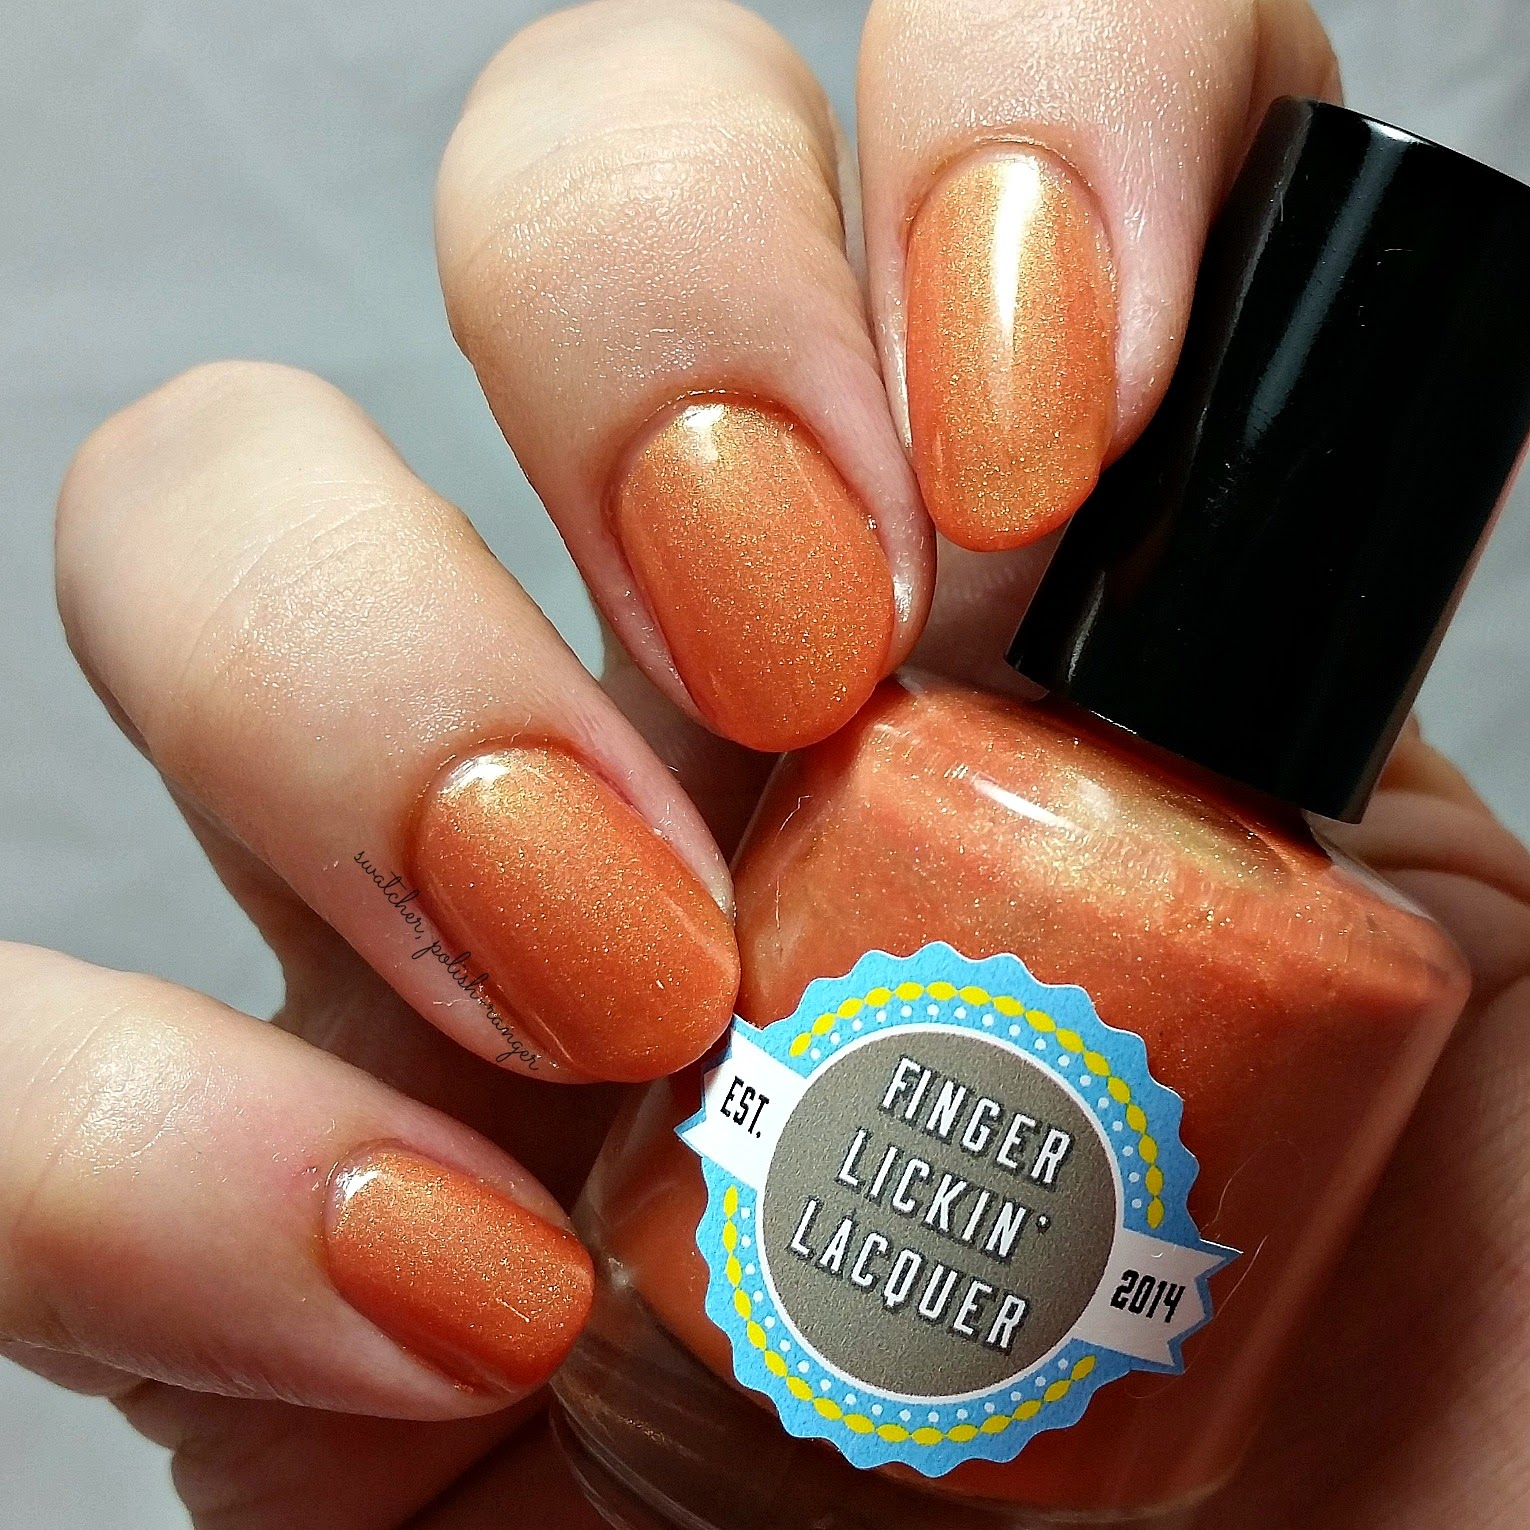 Finger Lickin' Lacquer Pumking swatch